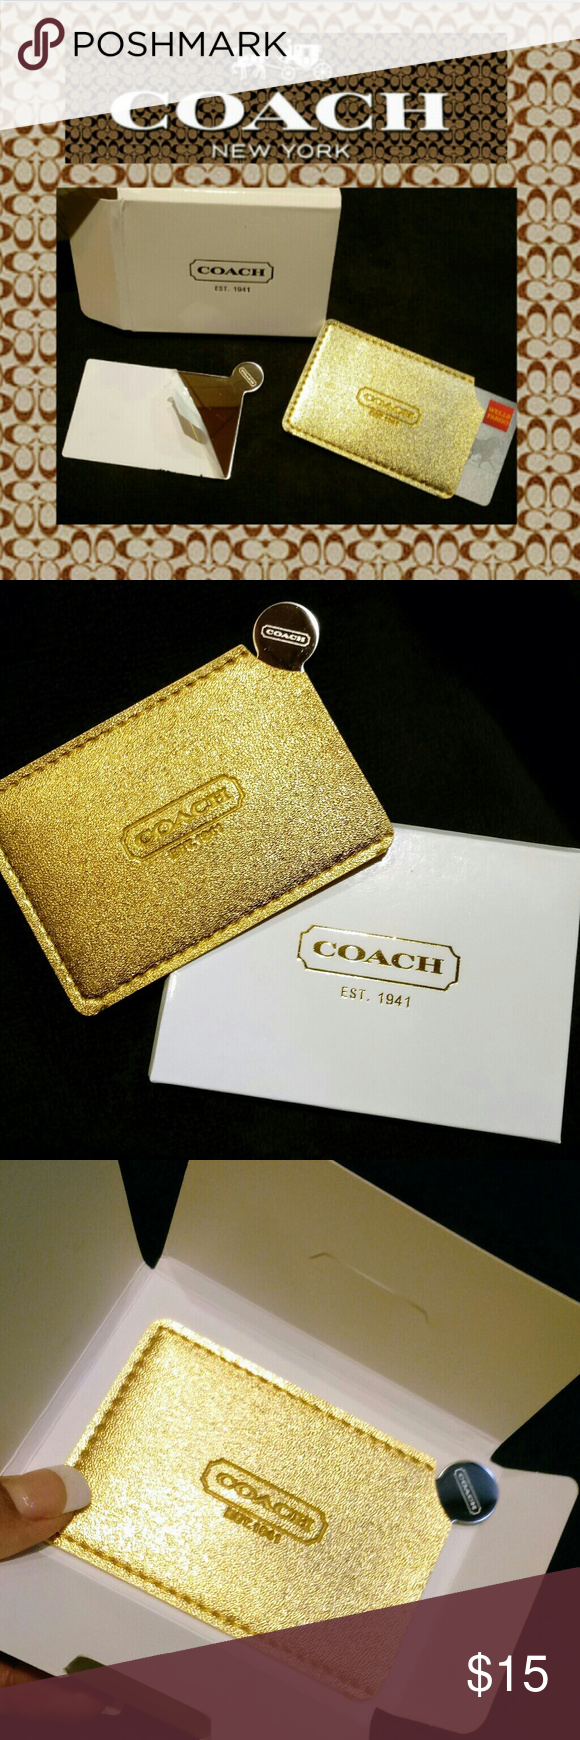 c9521c41b167 Coach Card Accessory Holder   FINAL PRICE New With Box Card Holder   Mirror  Included Color  Gold Coach Accessories